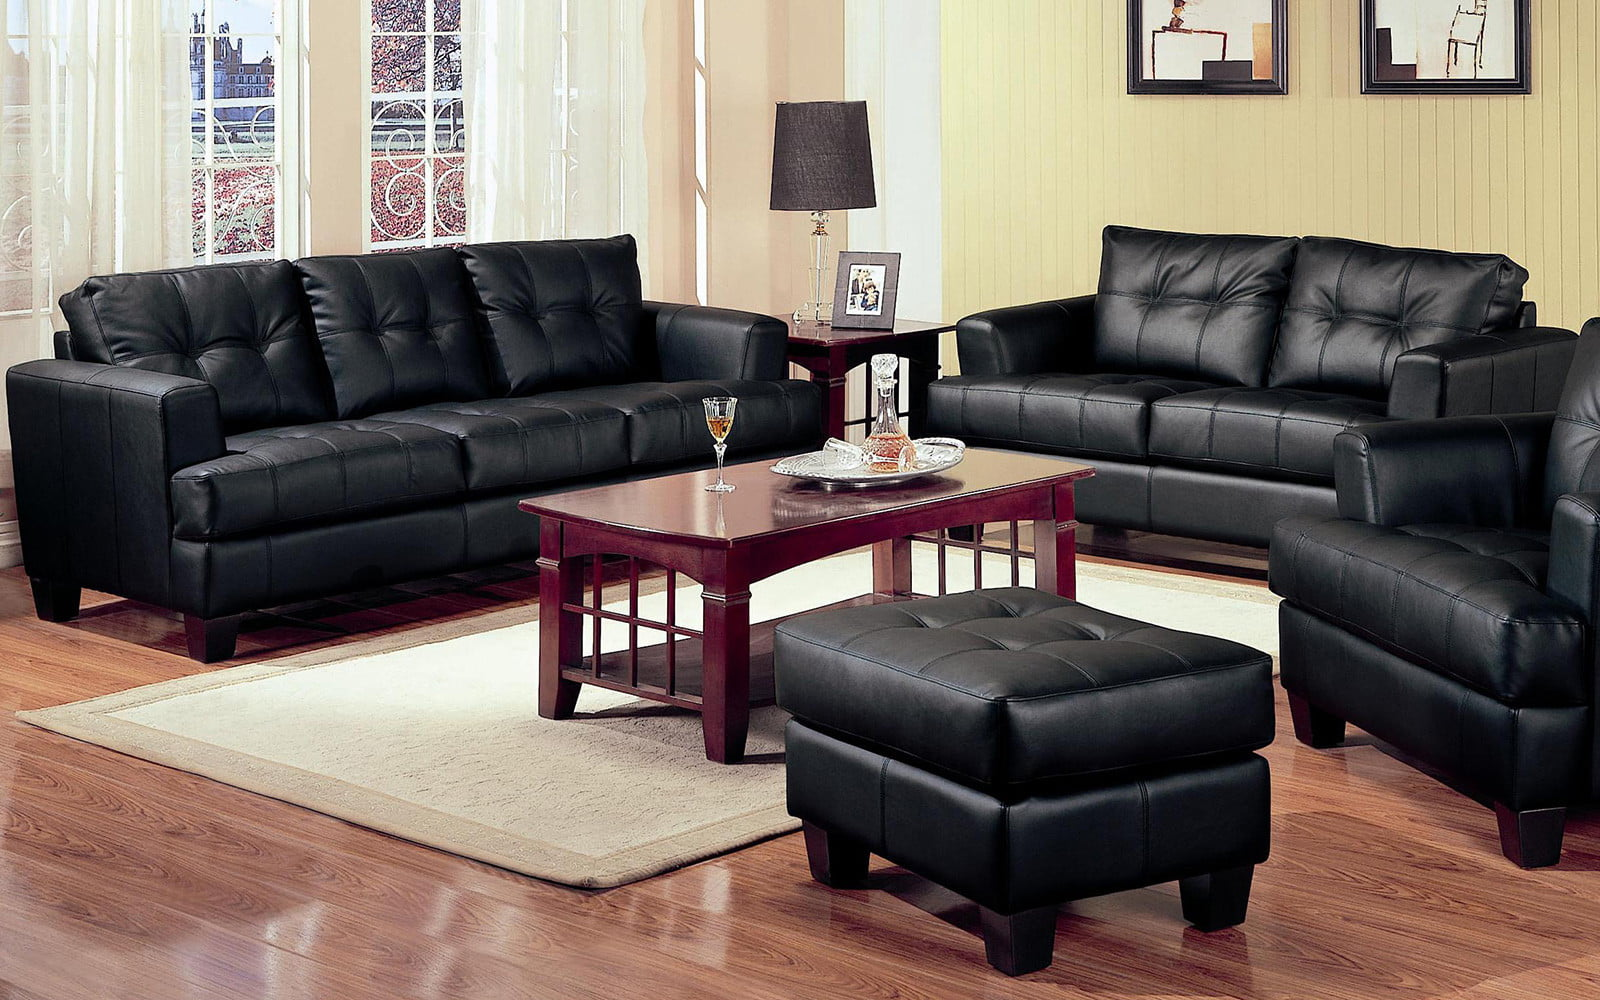 2 piece modern black bonded leather sofa and loveseat livingroom set walmartcom